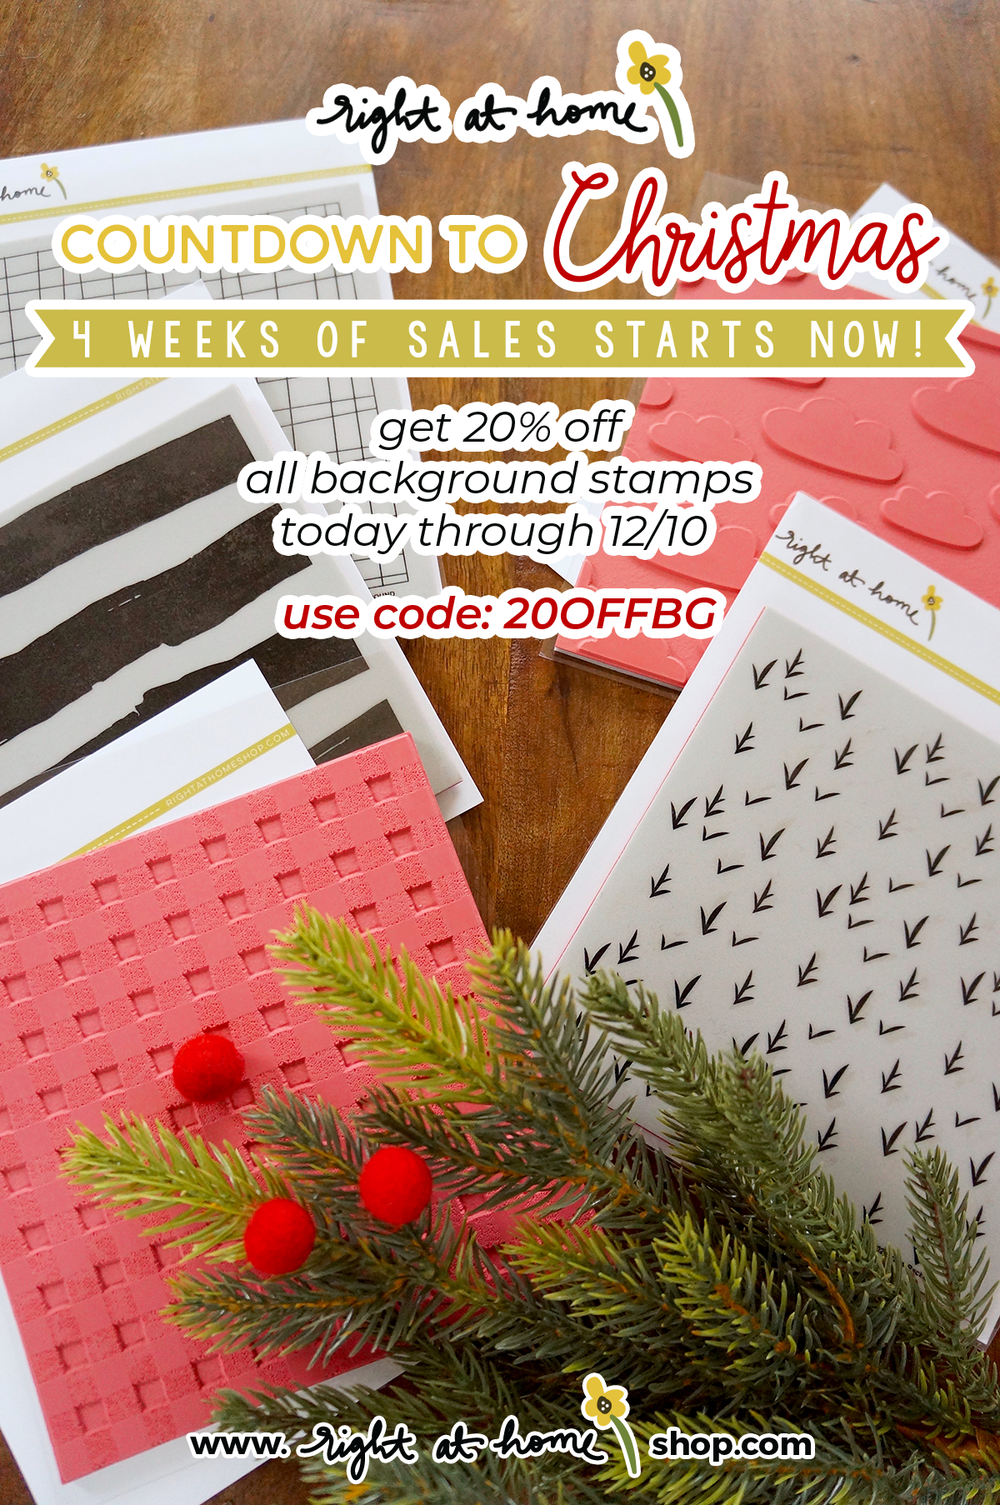 The Right at Home Countdown to Christmas 4 Week Sale Event Starts Now! Visit www.rightathomeshop.com to get 20% off ALL background stamps until 12/10/18 with code 20OFFBG